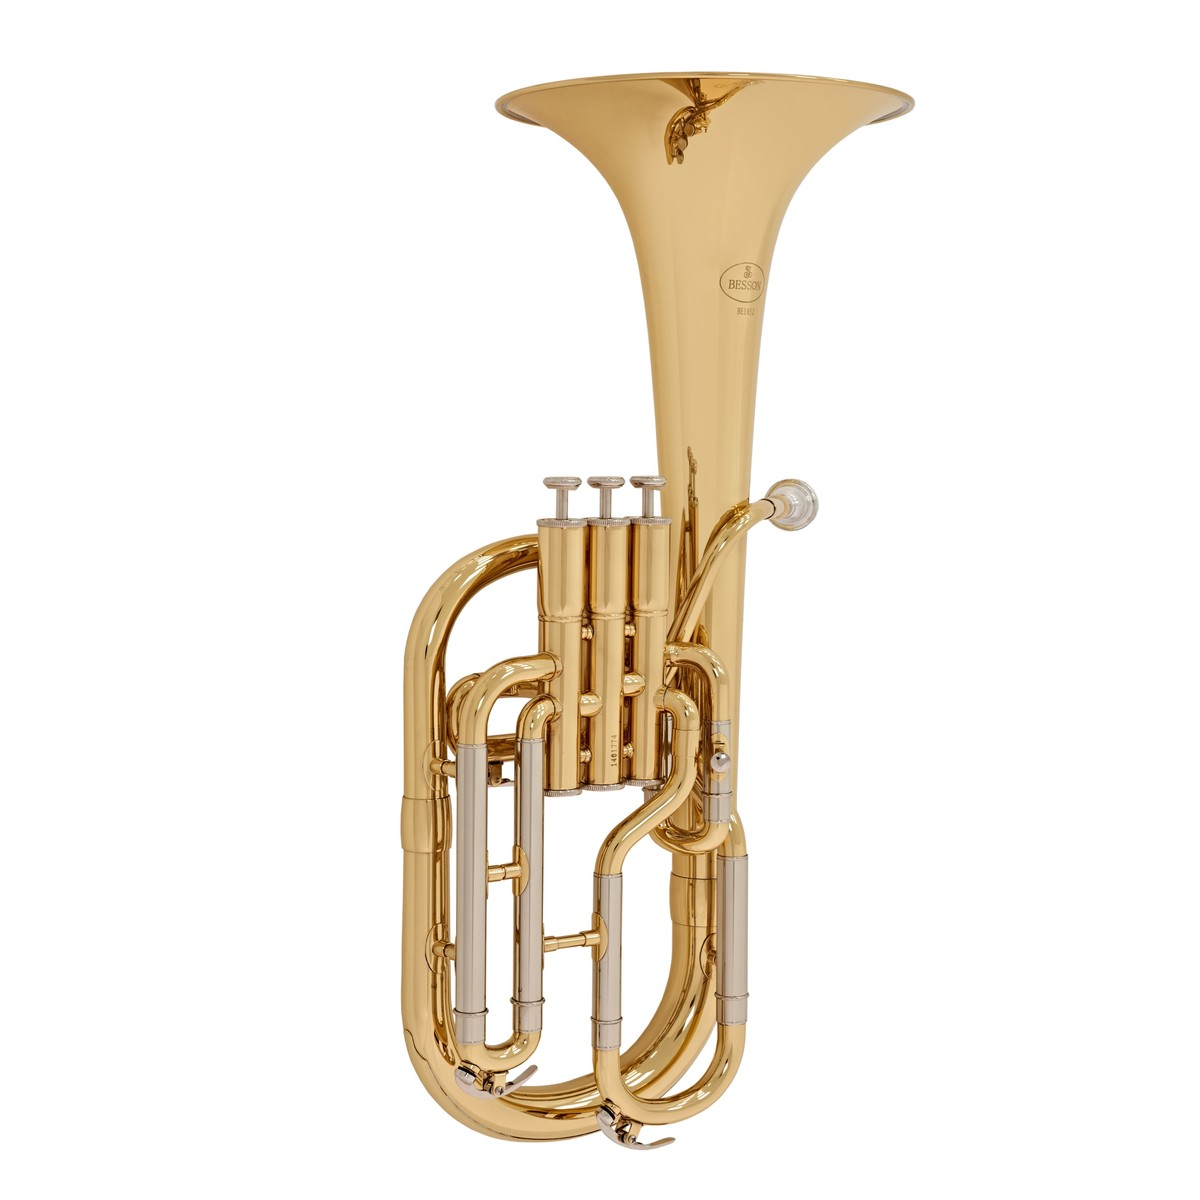 Besson BE152 Standard Eb Tenor Horn